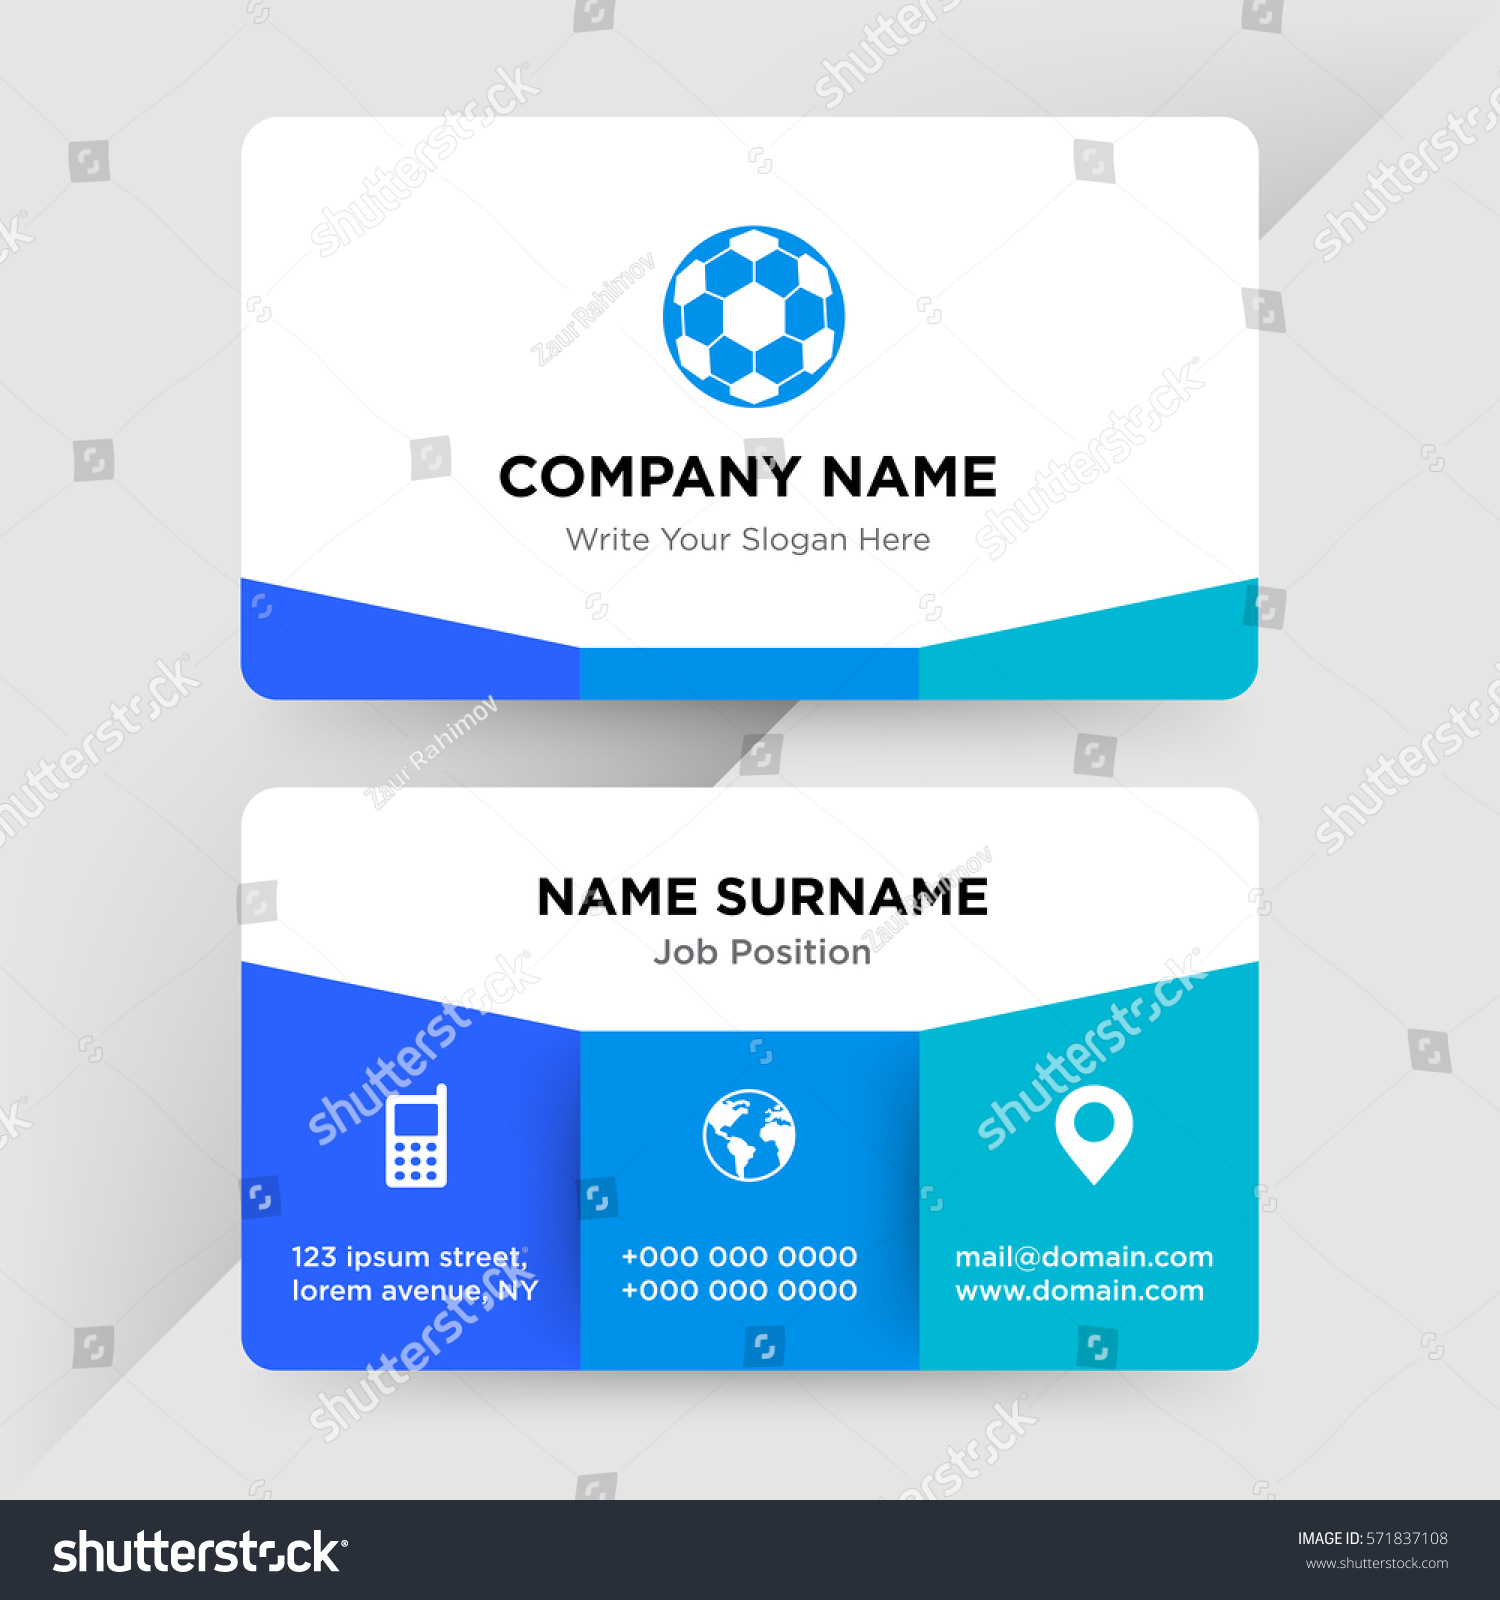 Template Business Card Equipment Sale Sport Stock Vector (Royalty ...